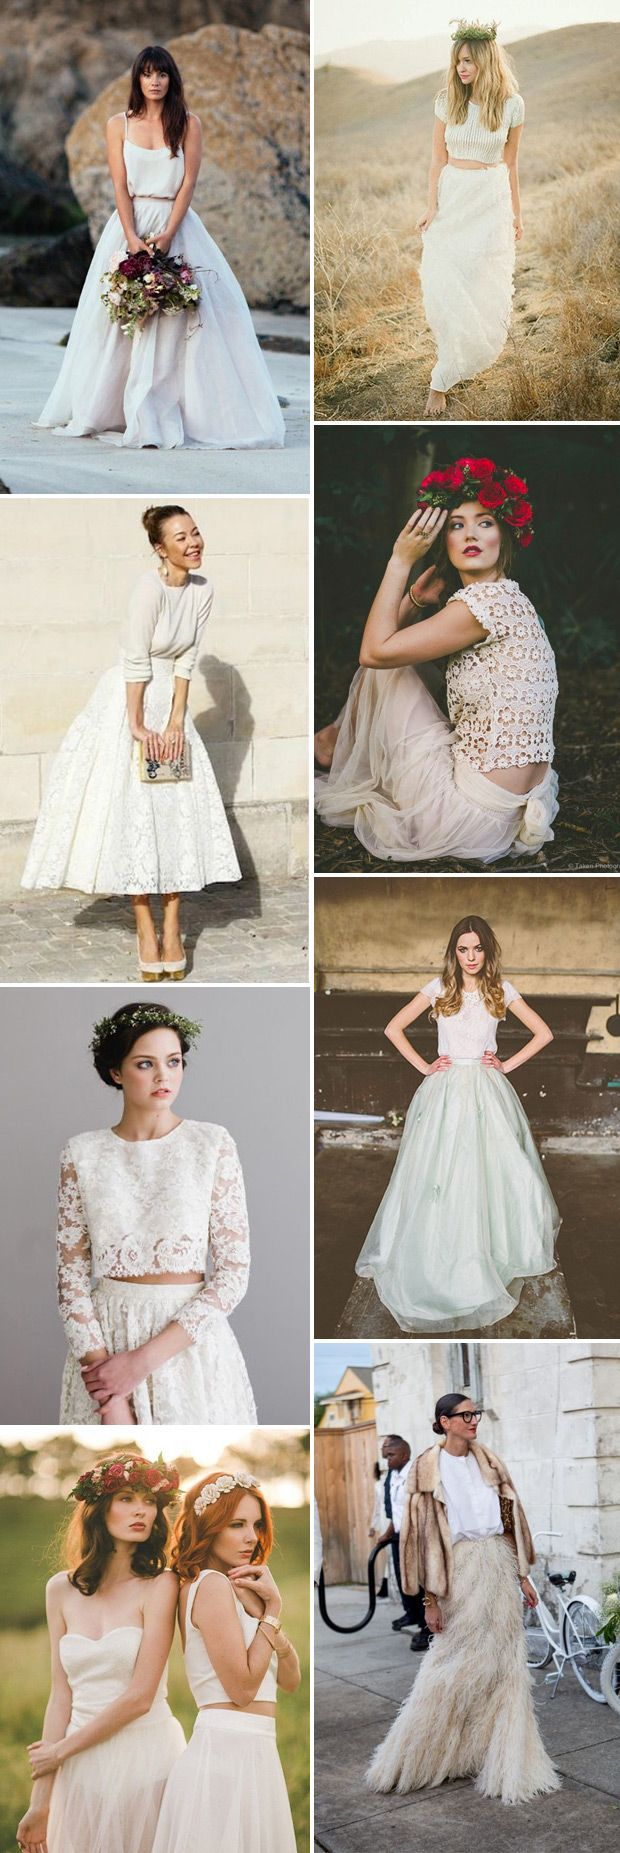 A Hot Trend for 2015 | Bridal Separates | www.onefabday.com